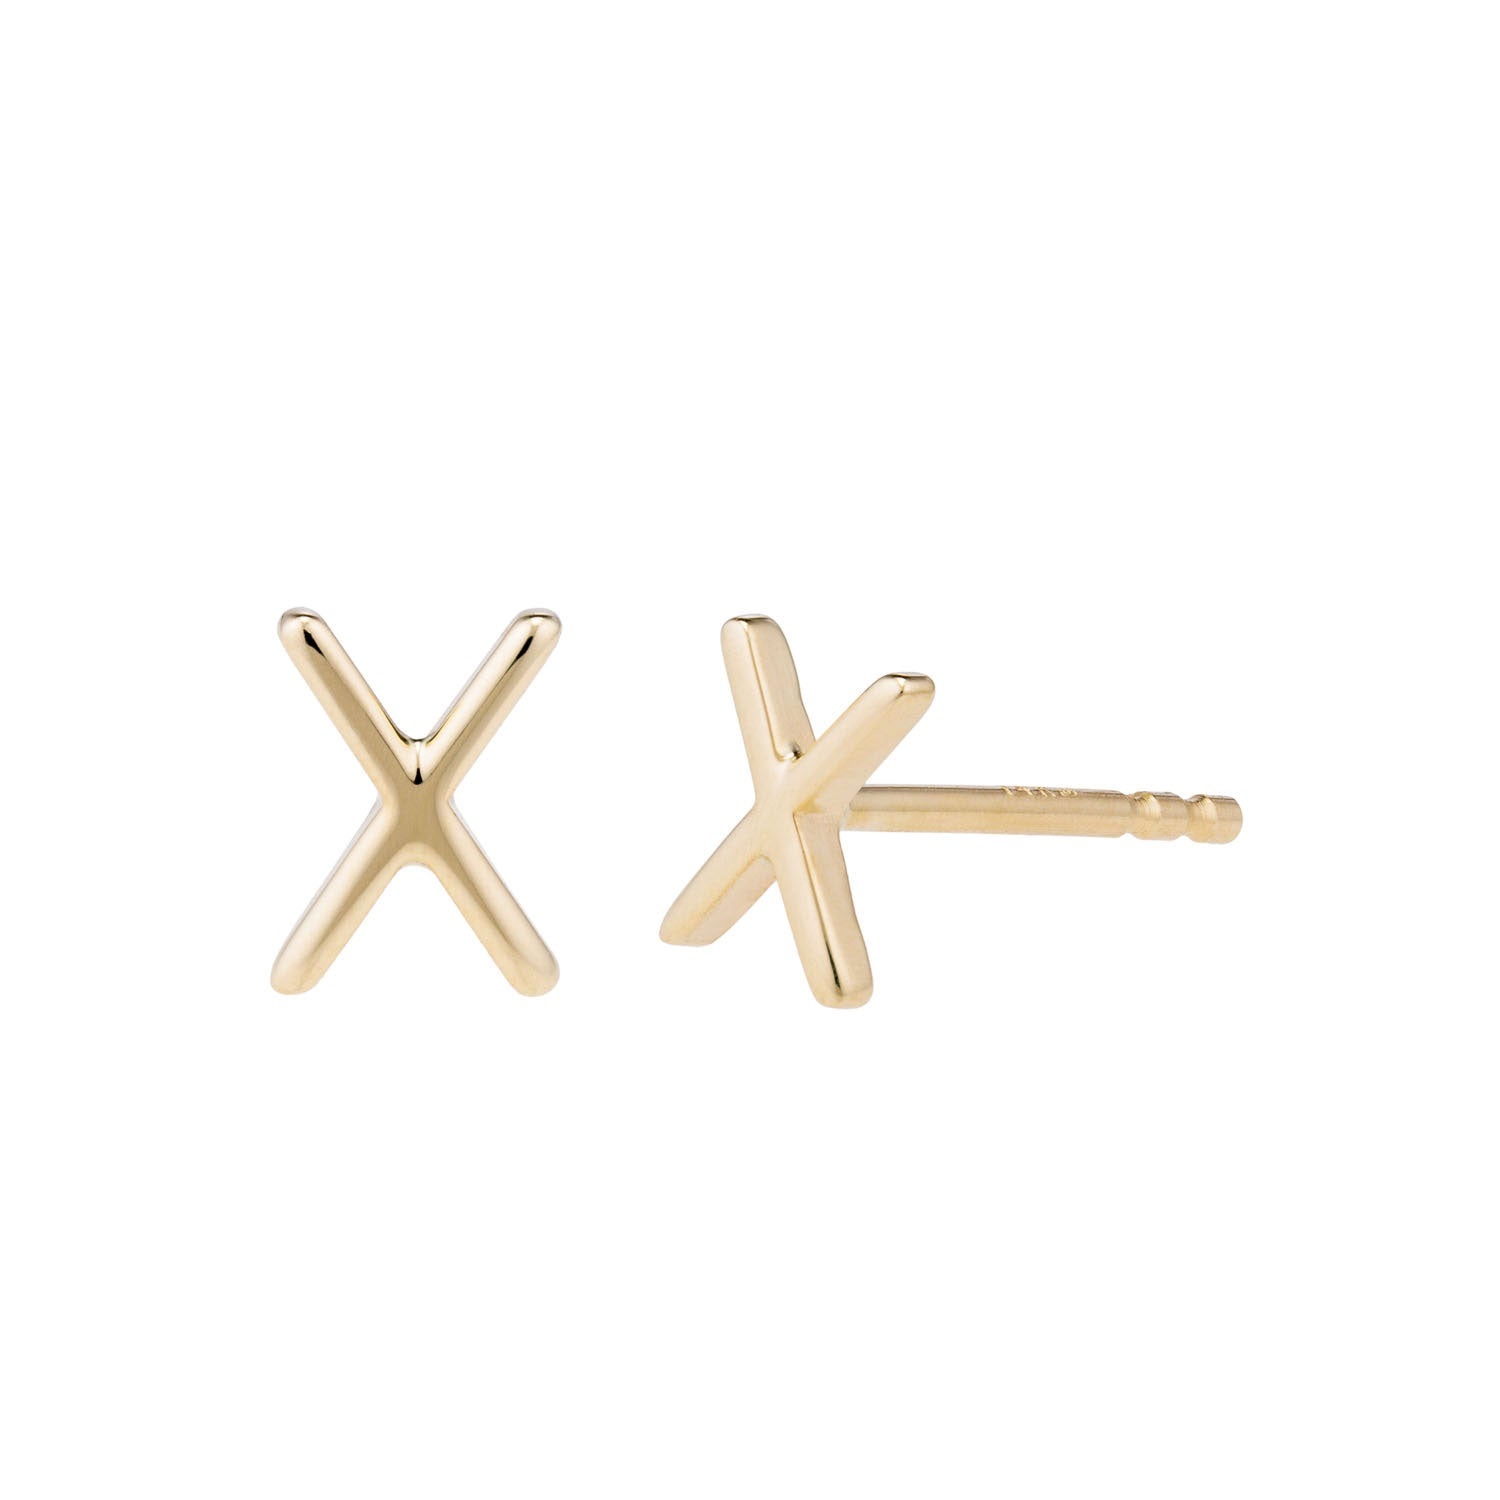 14k Yellow gold x stud earrings by Valerie Madison